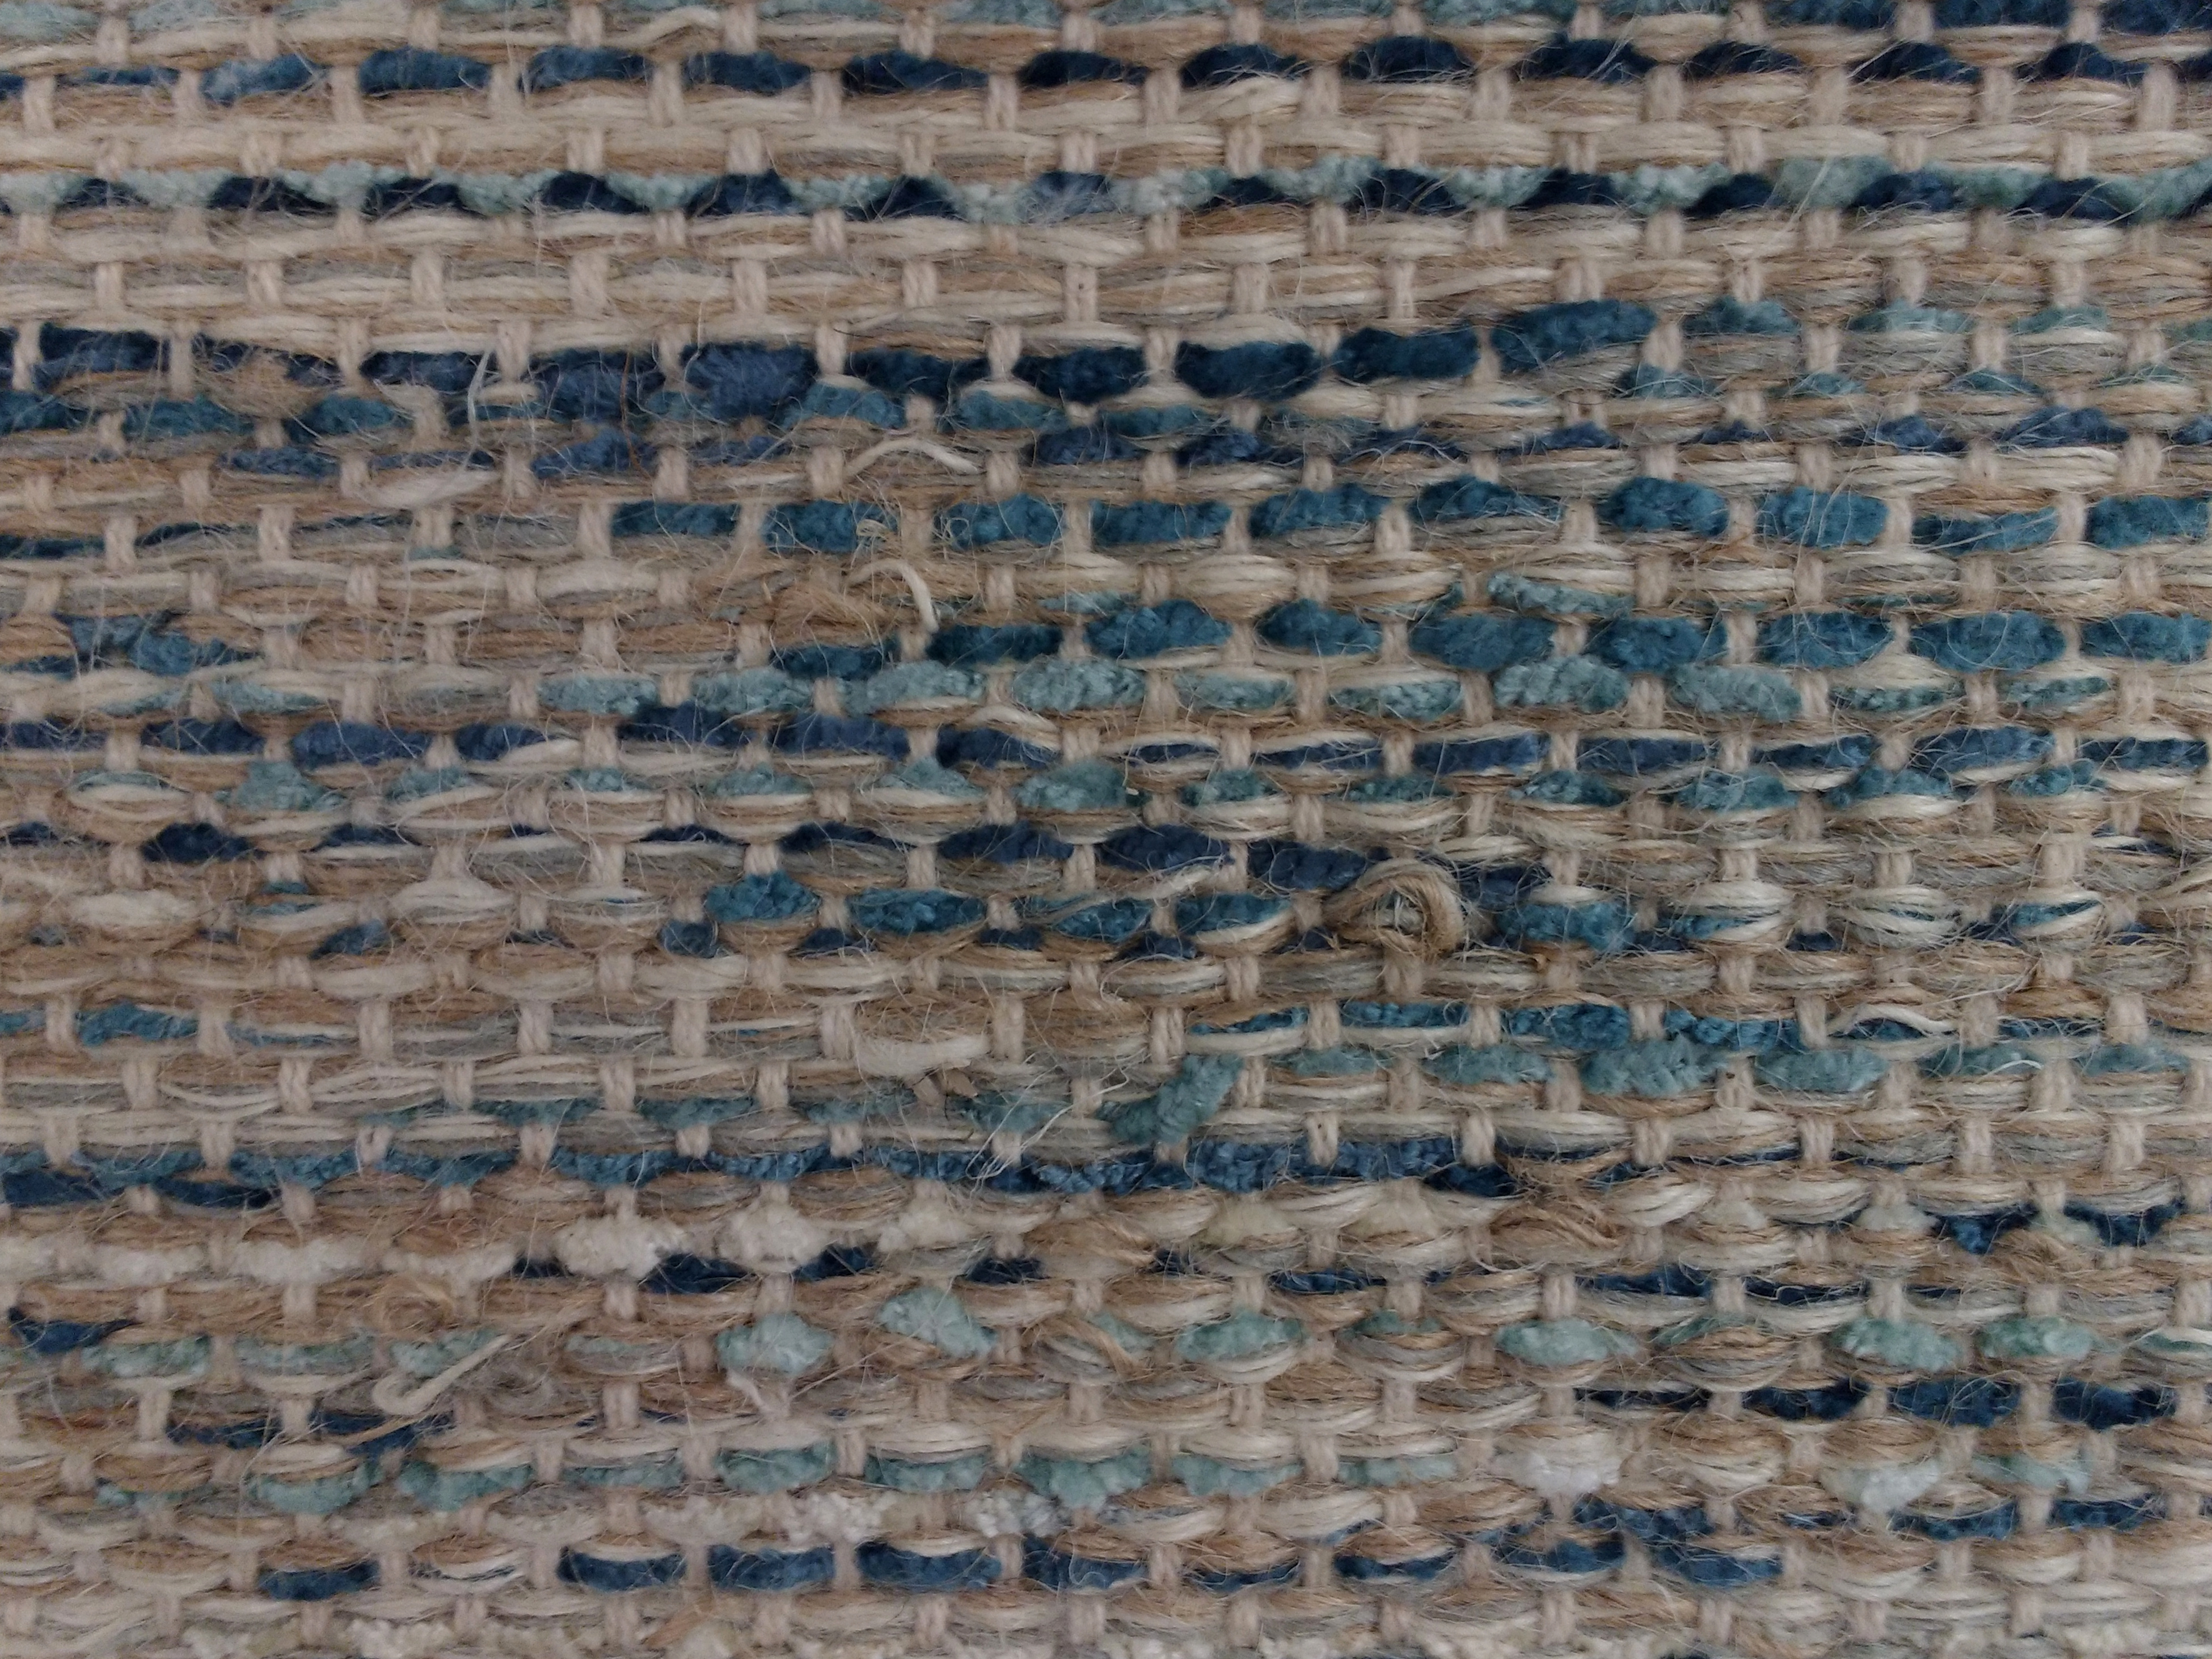 Brown And Blue Woven Rug Texture Picture Free Photograph